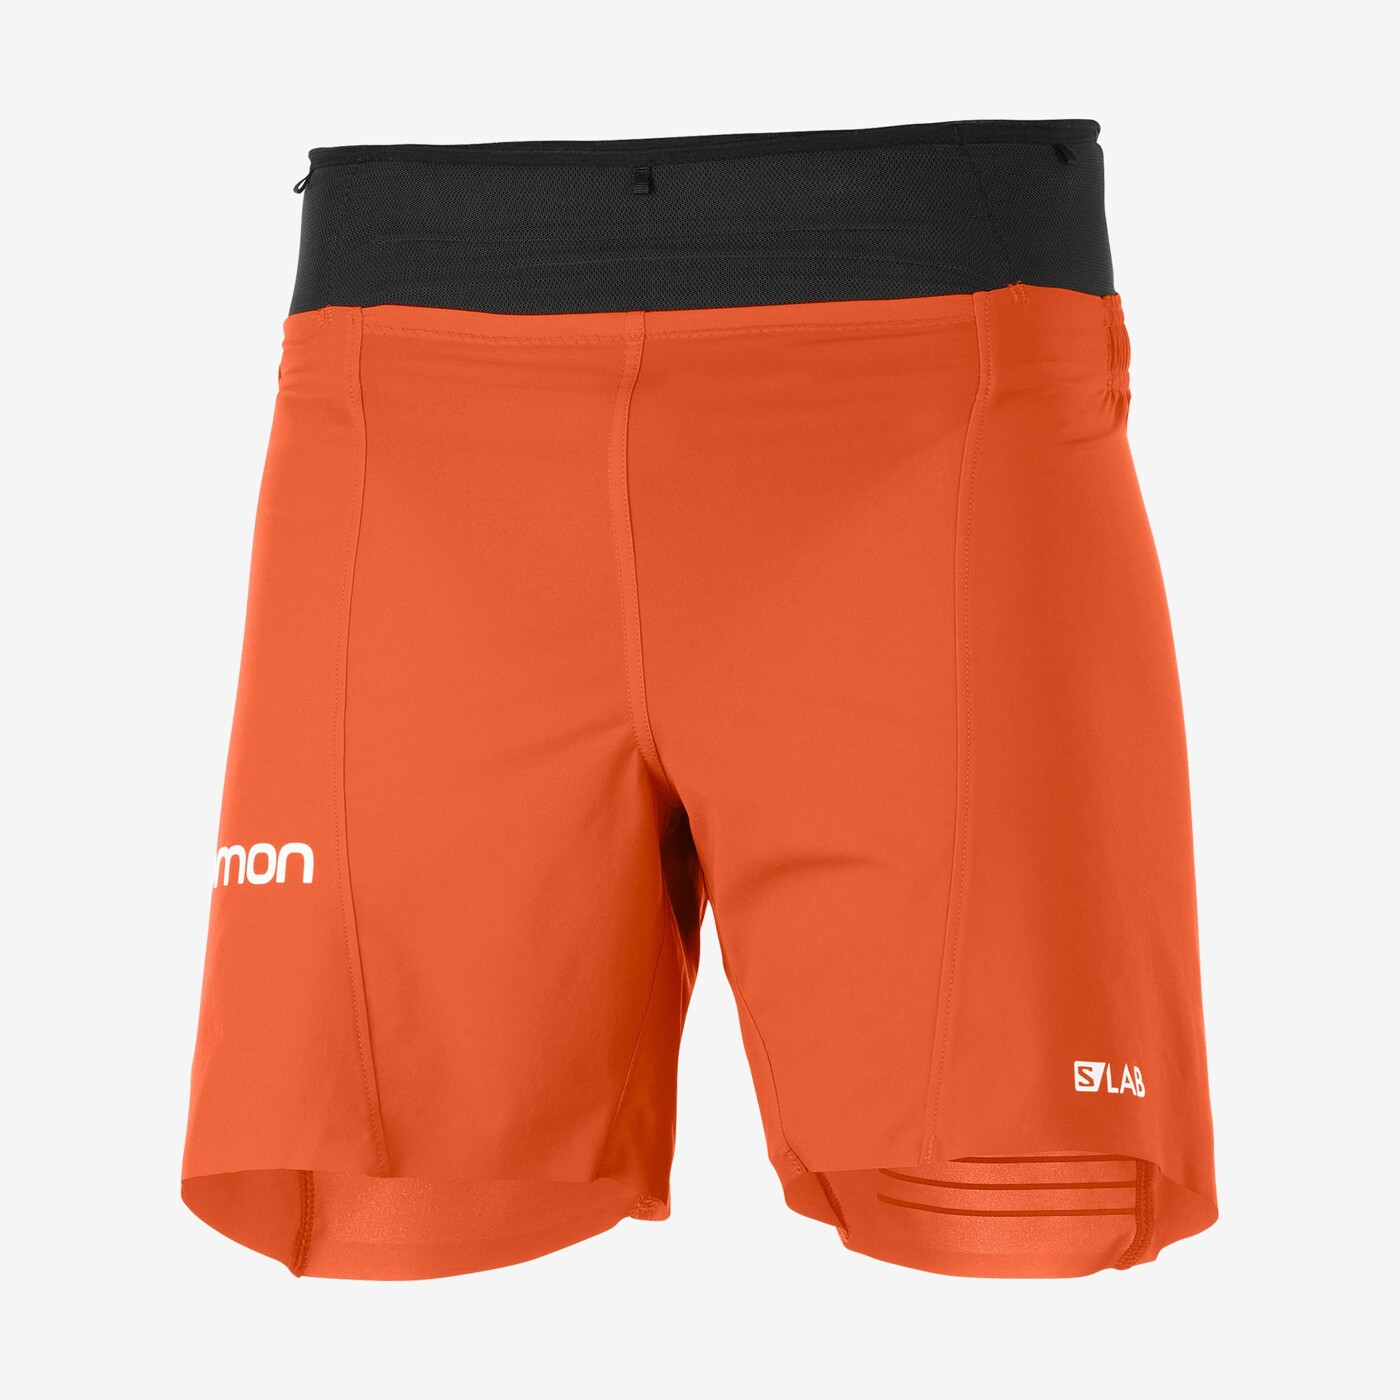 SALOMON S/LAB SENSE 6'' - Shorts - Herren